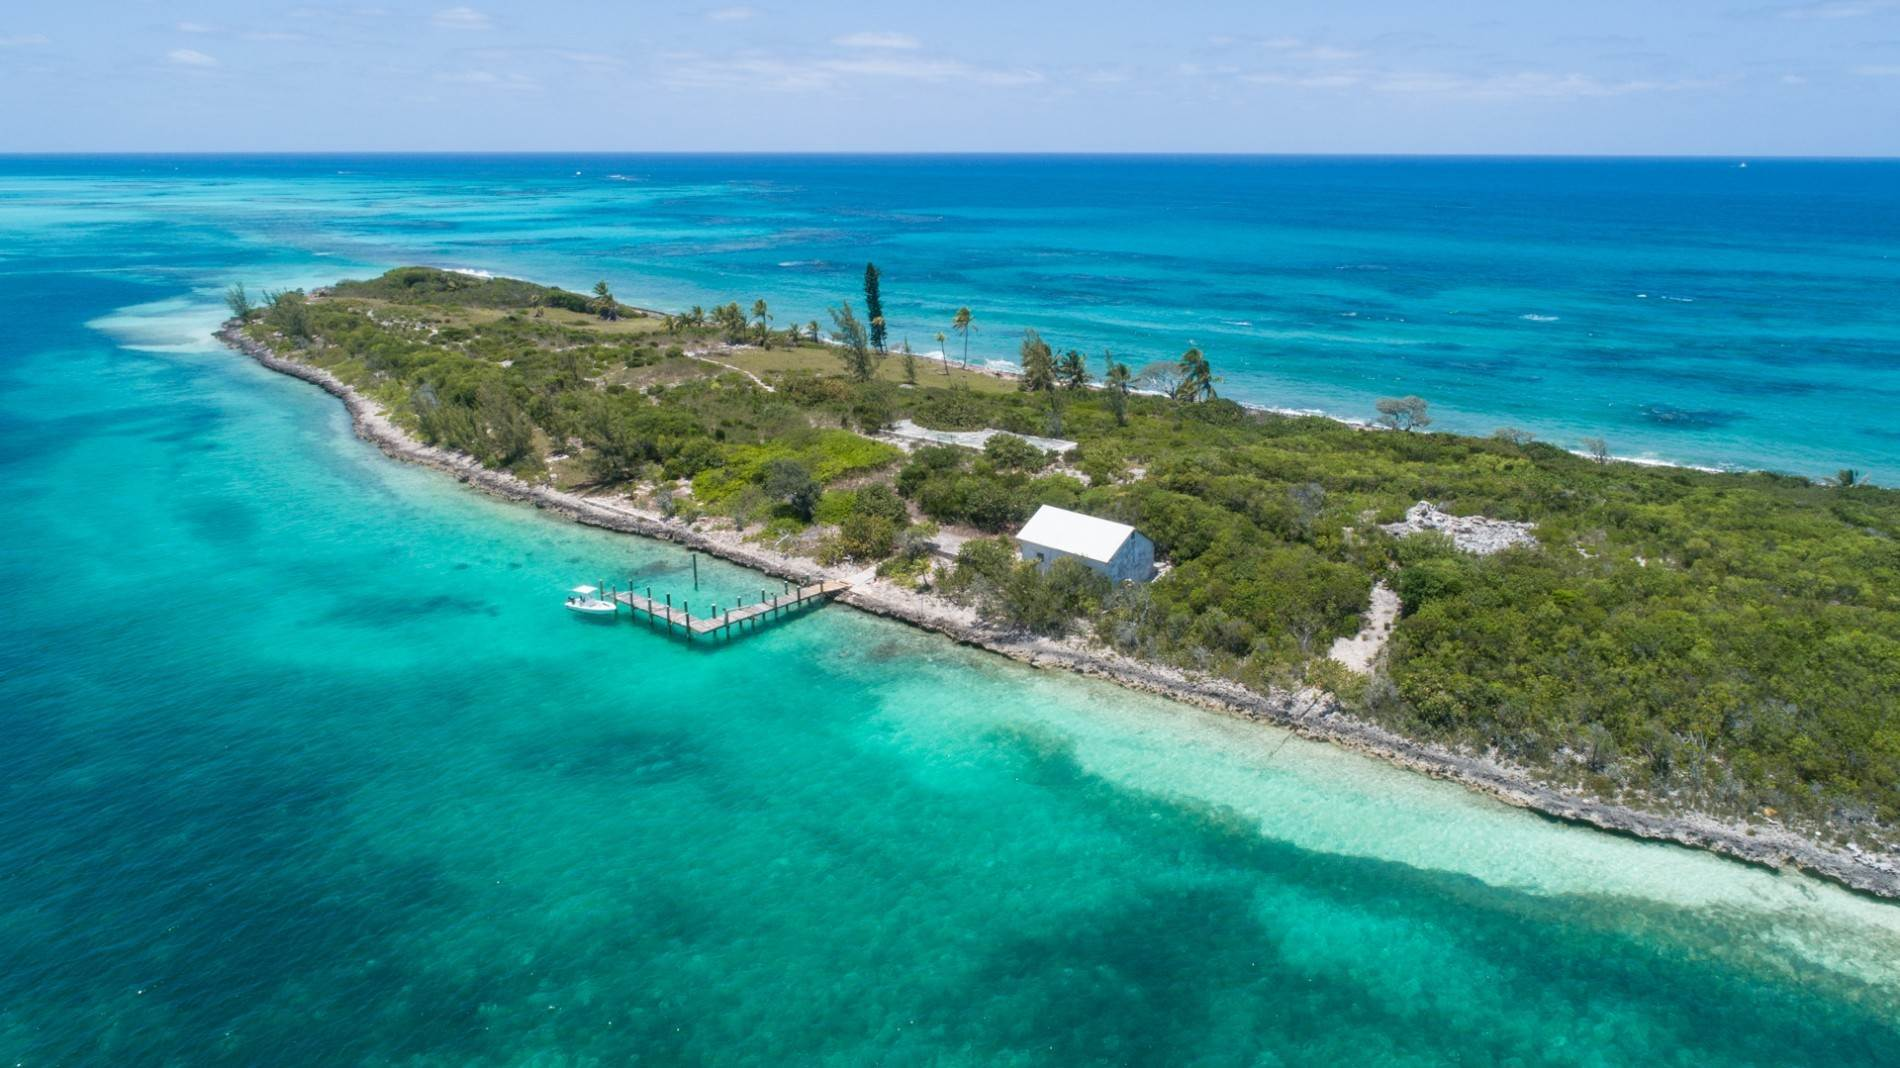 10. Private Islands for Sale at Pierre Island, A Perfect Private Retreat Island Near Harbour Island - MLS 40806 Harbour Island, Eleuthera, Bahamas